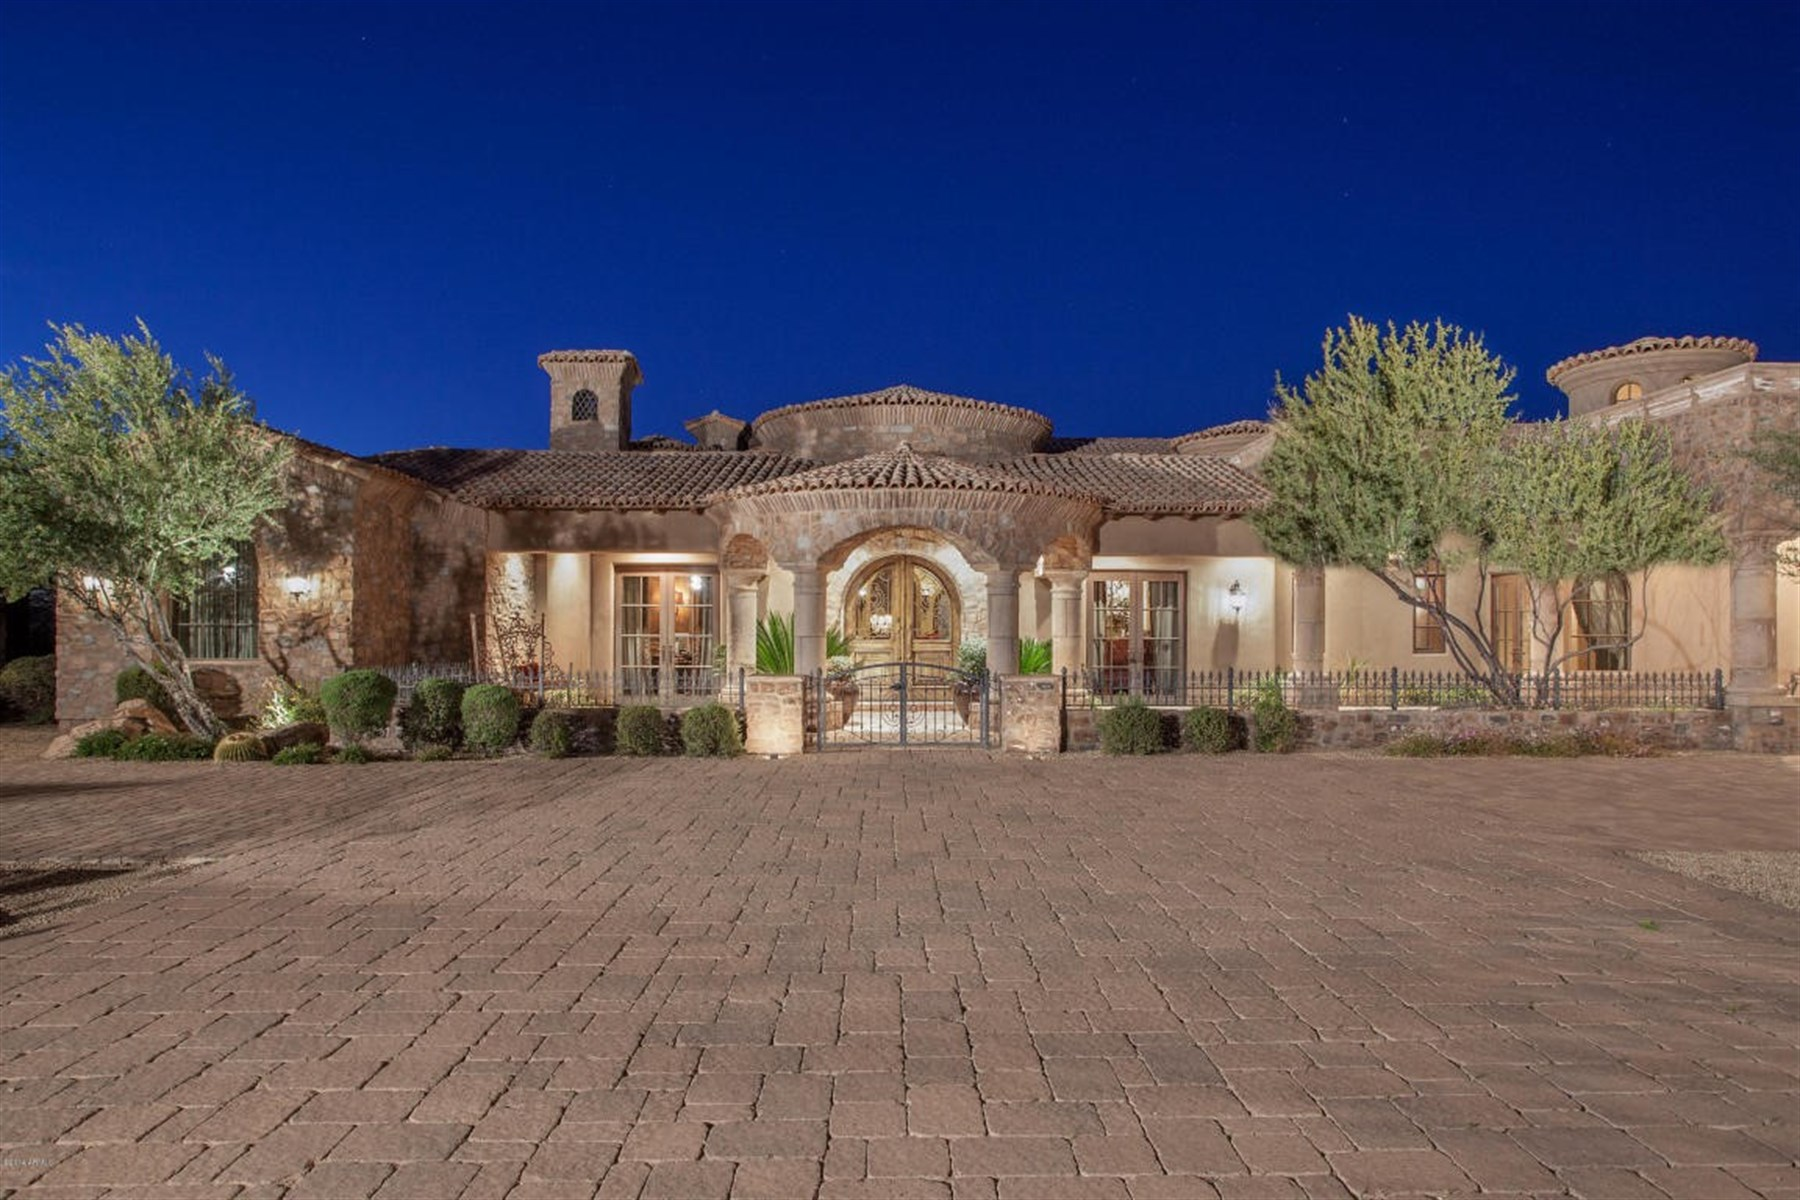 Casa Unifamiliar por un Venta en Incredible sprawling estate situated on 8.75 acres of beautiful Sonoran Desert 8143 E Stagecoach Pass Scottsdale, Arizona, 85266 Estados Unidos